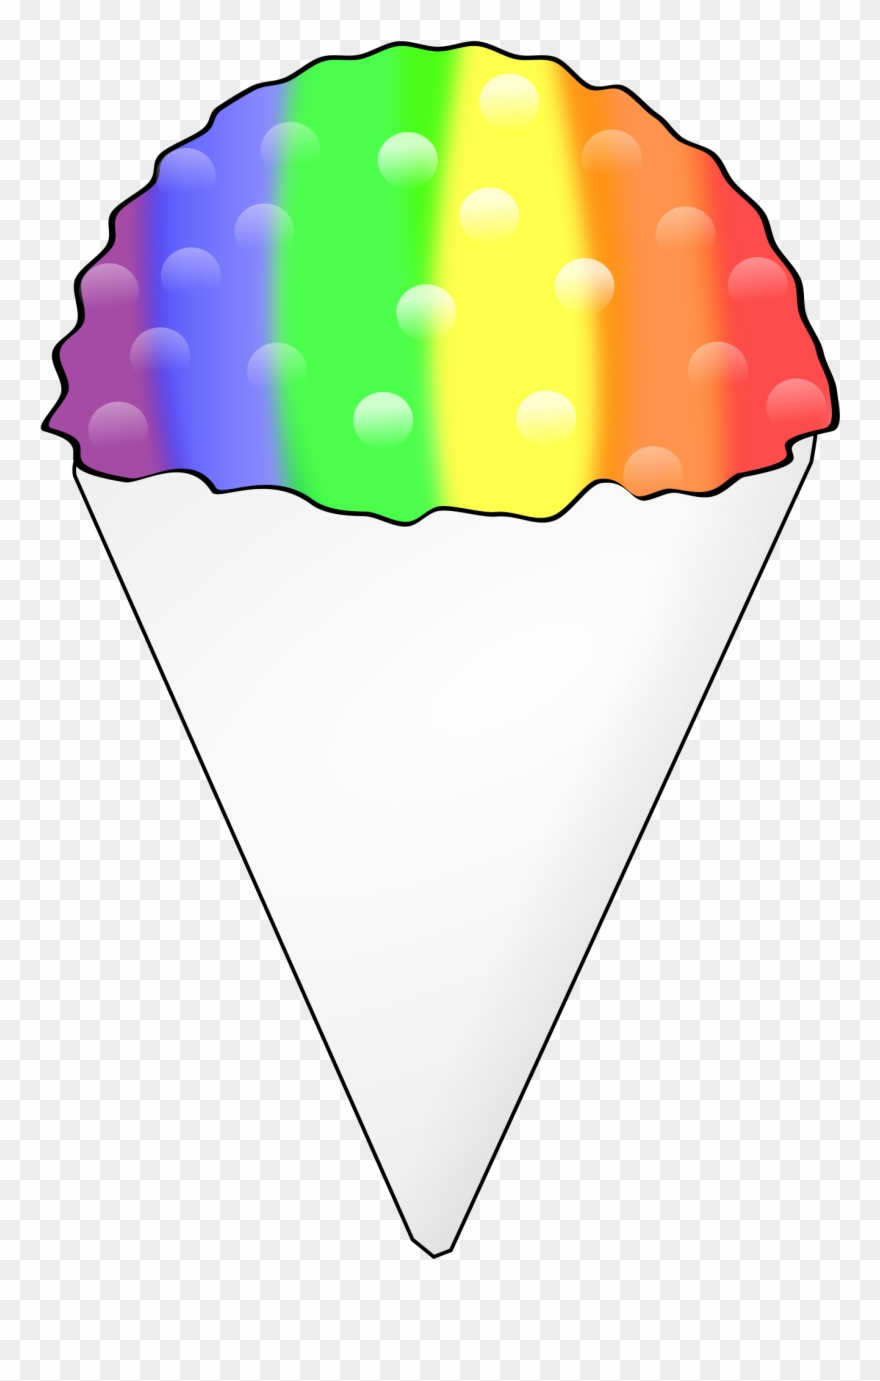 medium resolution of snow cone clipart 3 clip art ice cream png download